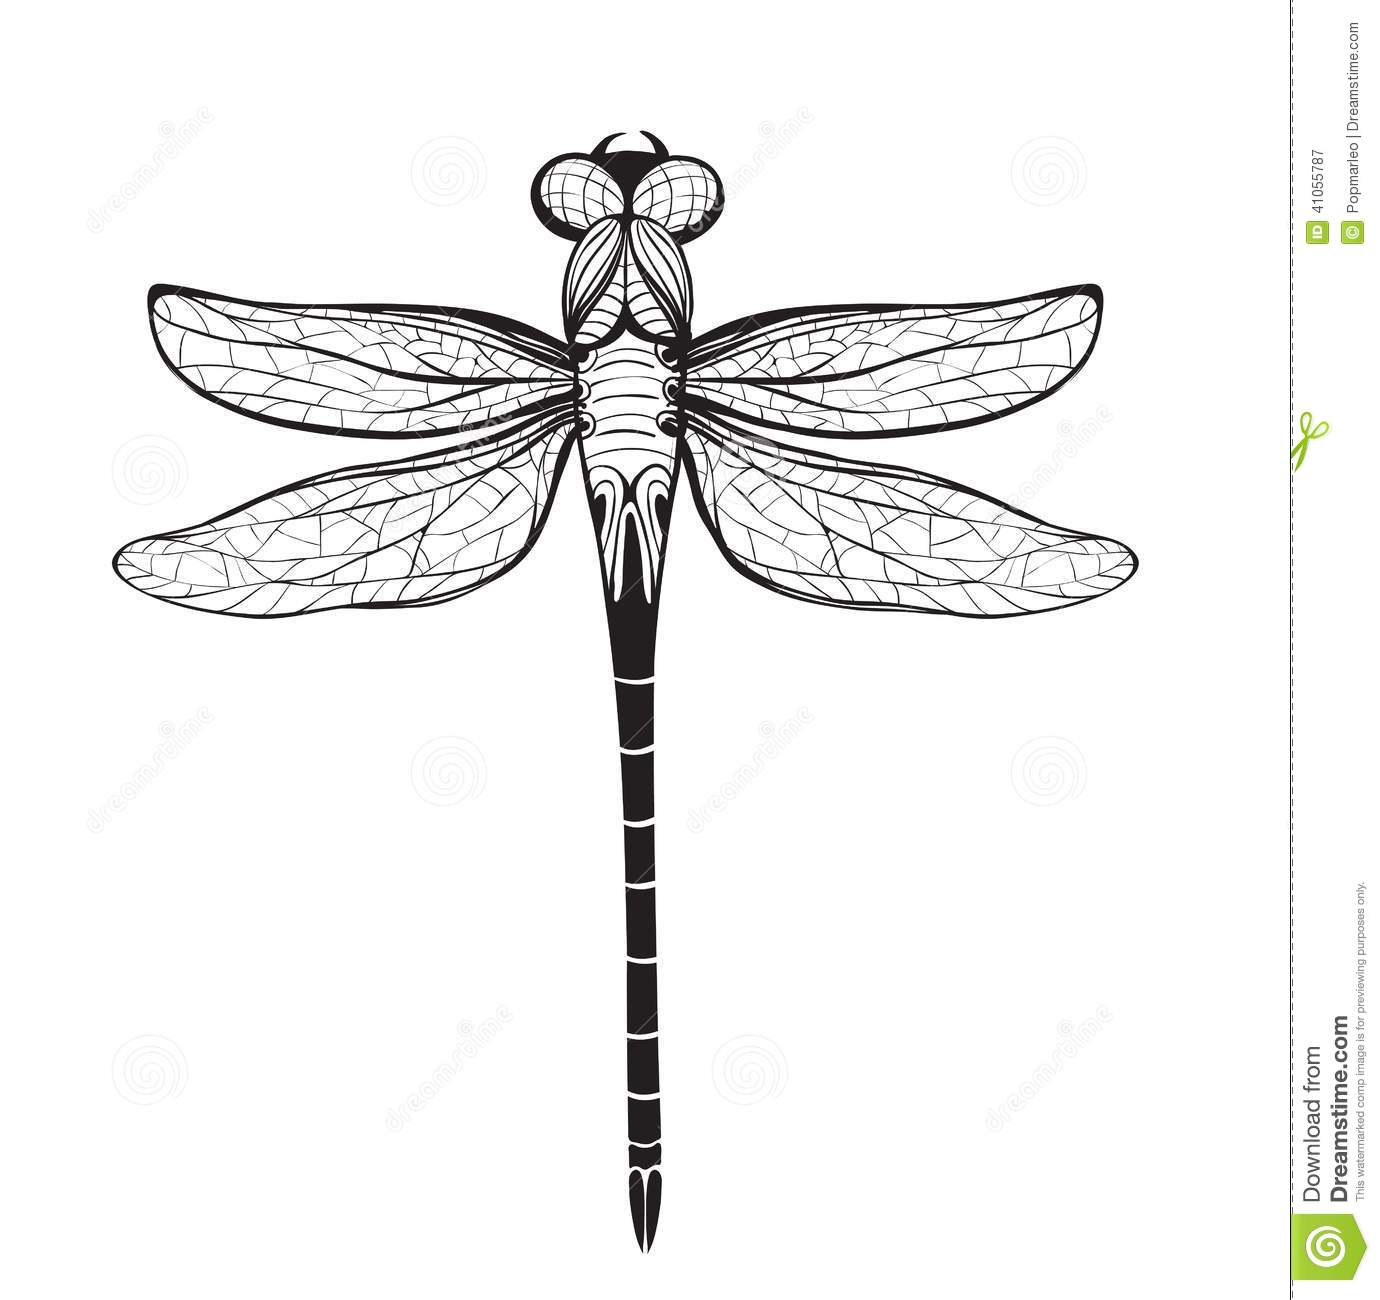 firefly insect flying drawing